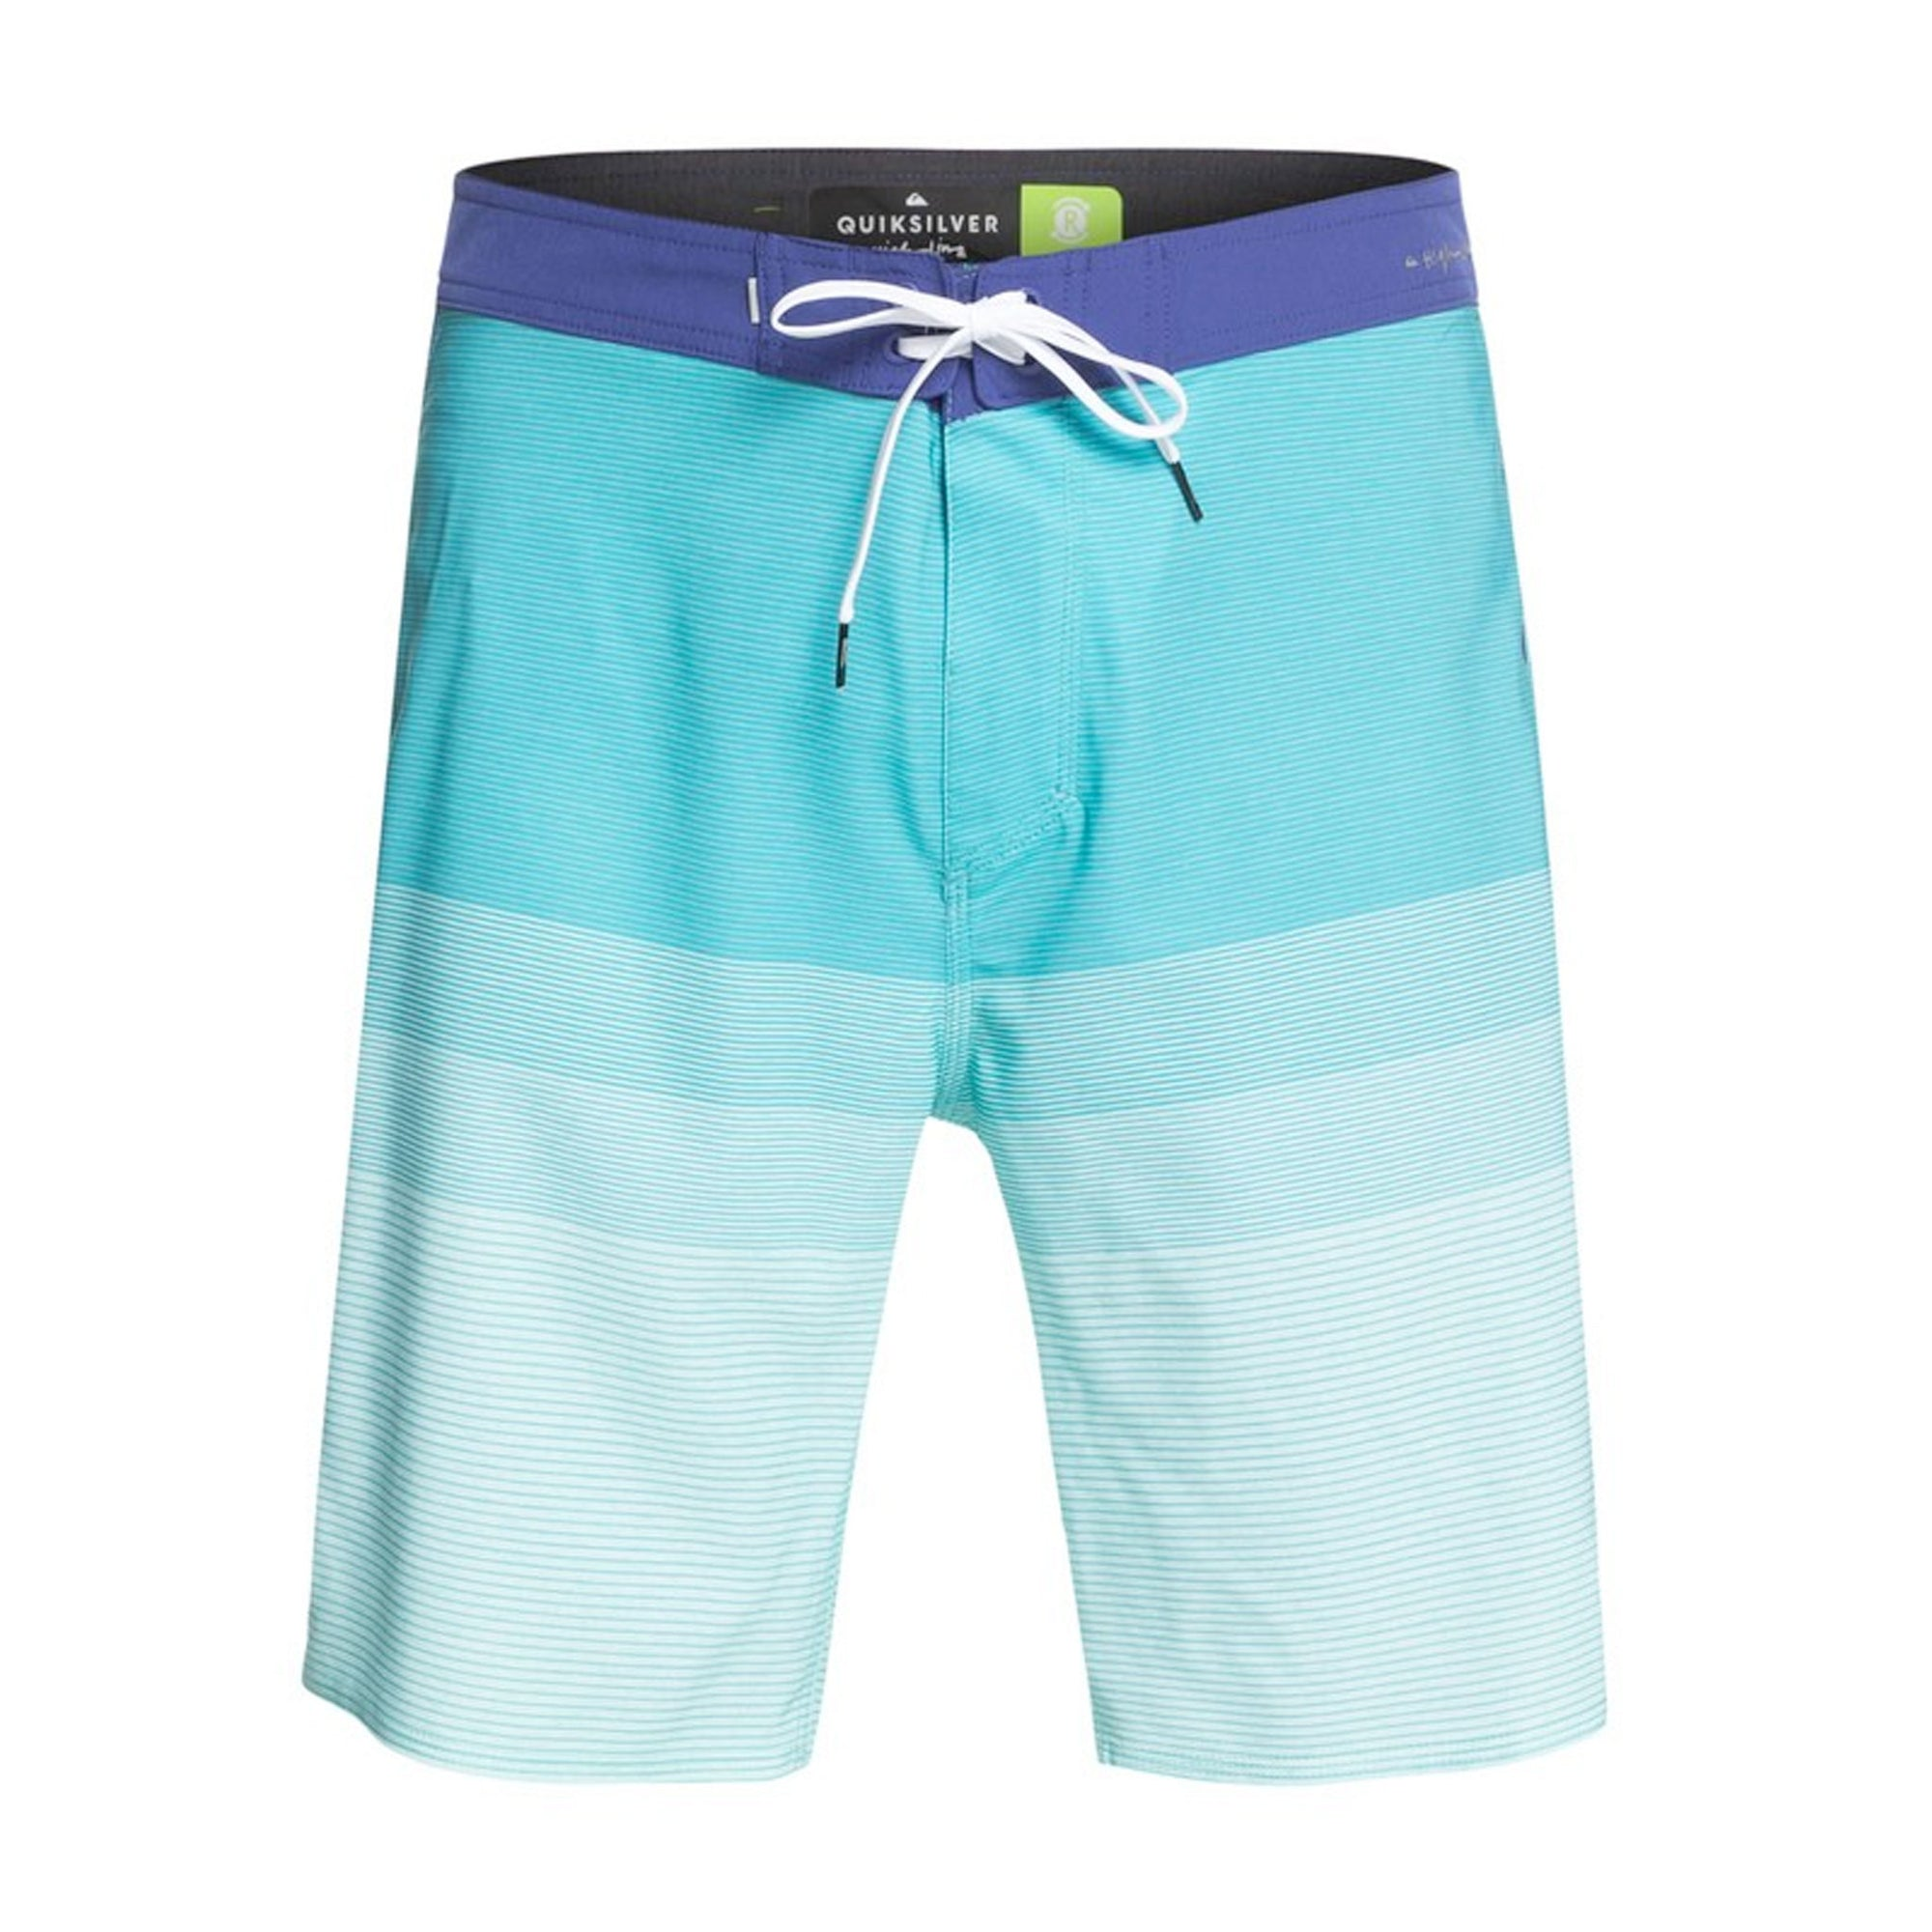 "Quiksilver Highline Massive 20"" Men's Boardshort"